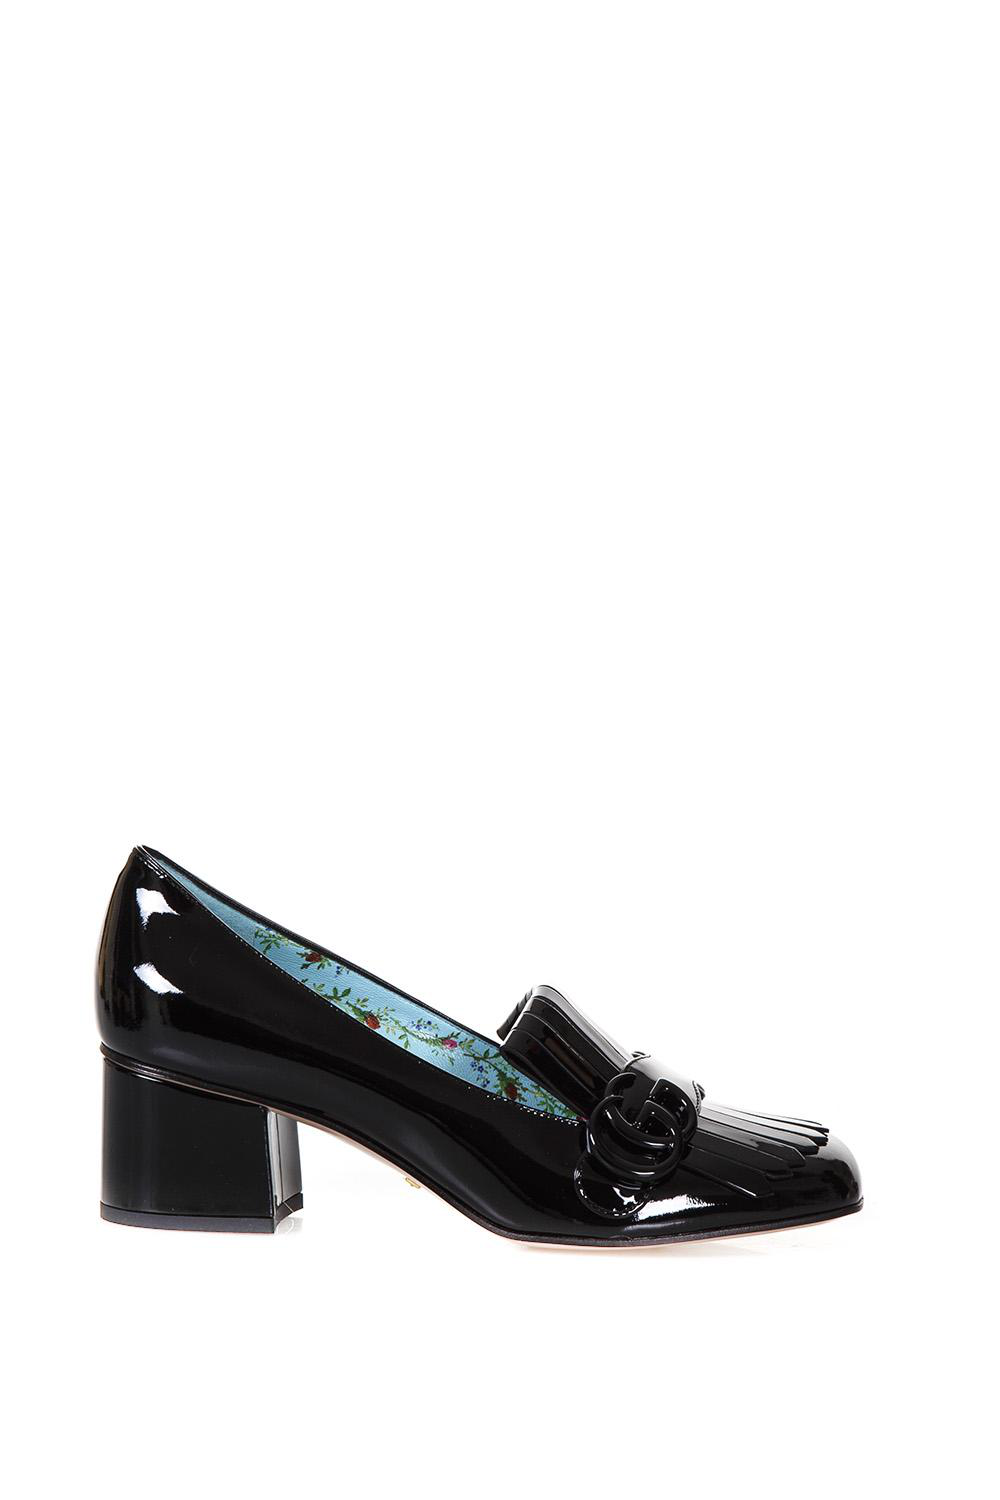 Gucci Marmont Patent Leather Mid-Heel Pump In 1000/Black